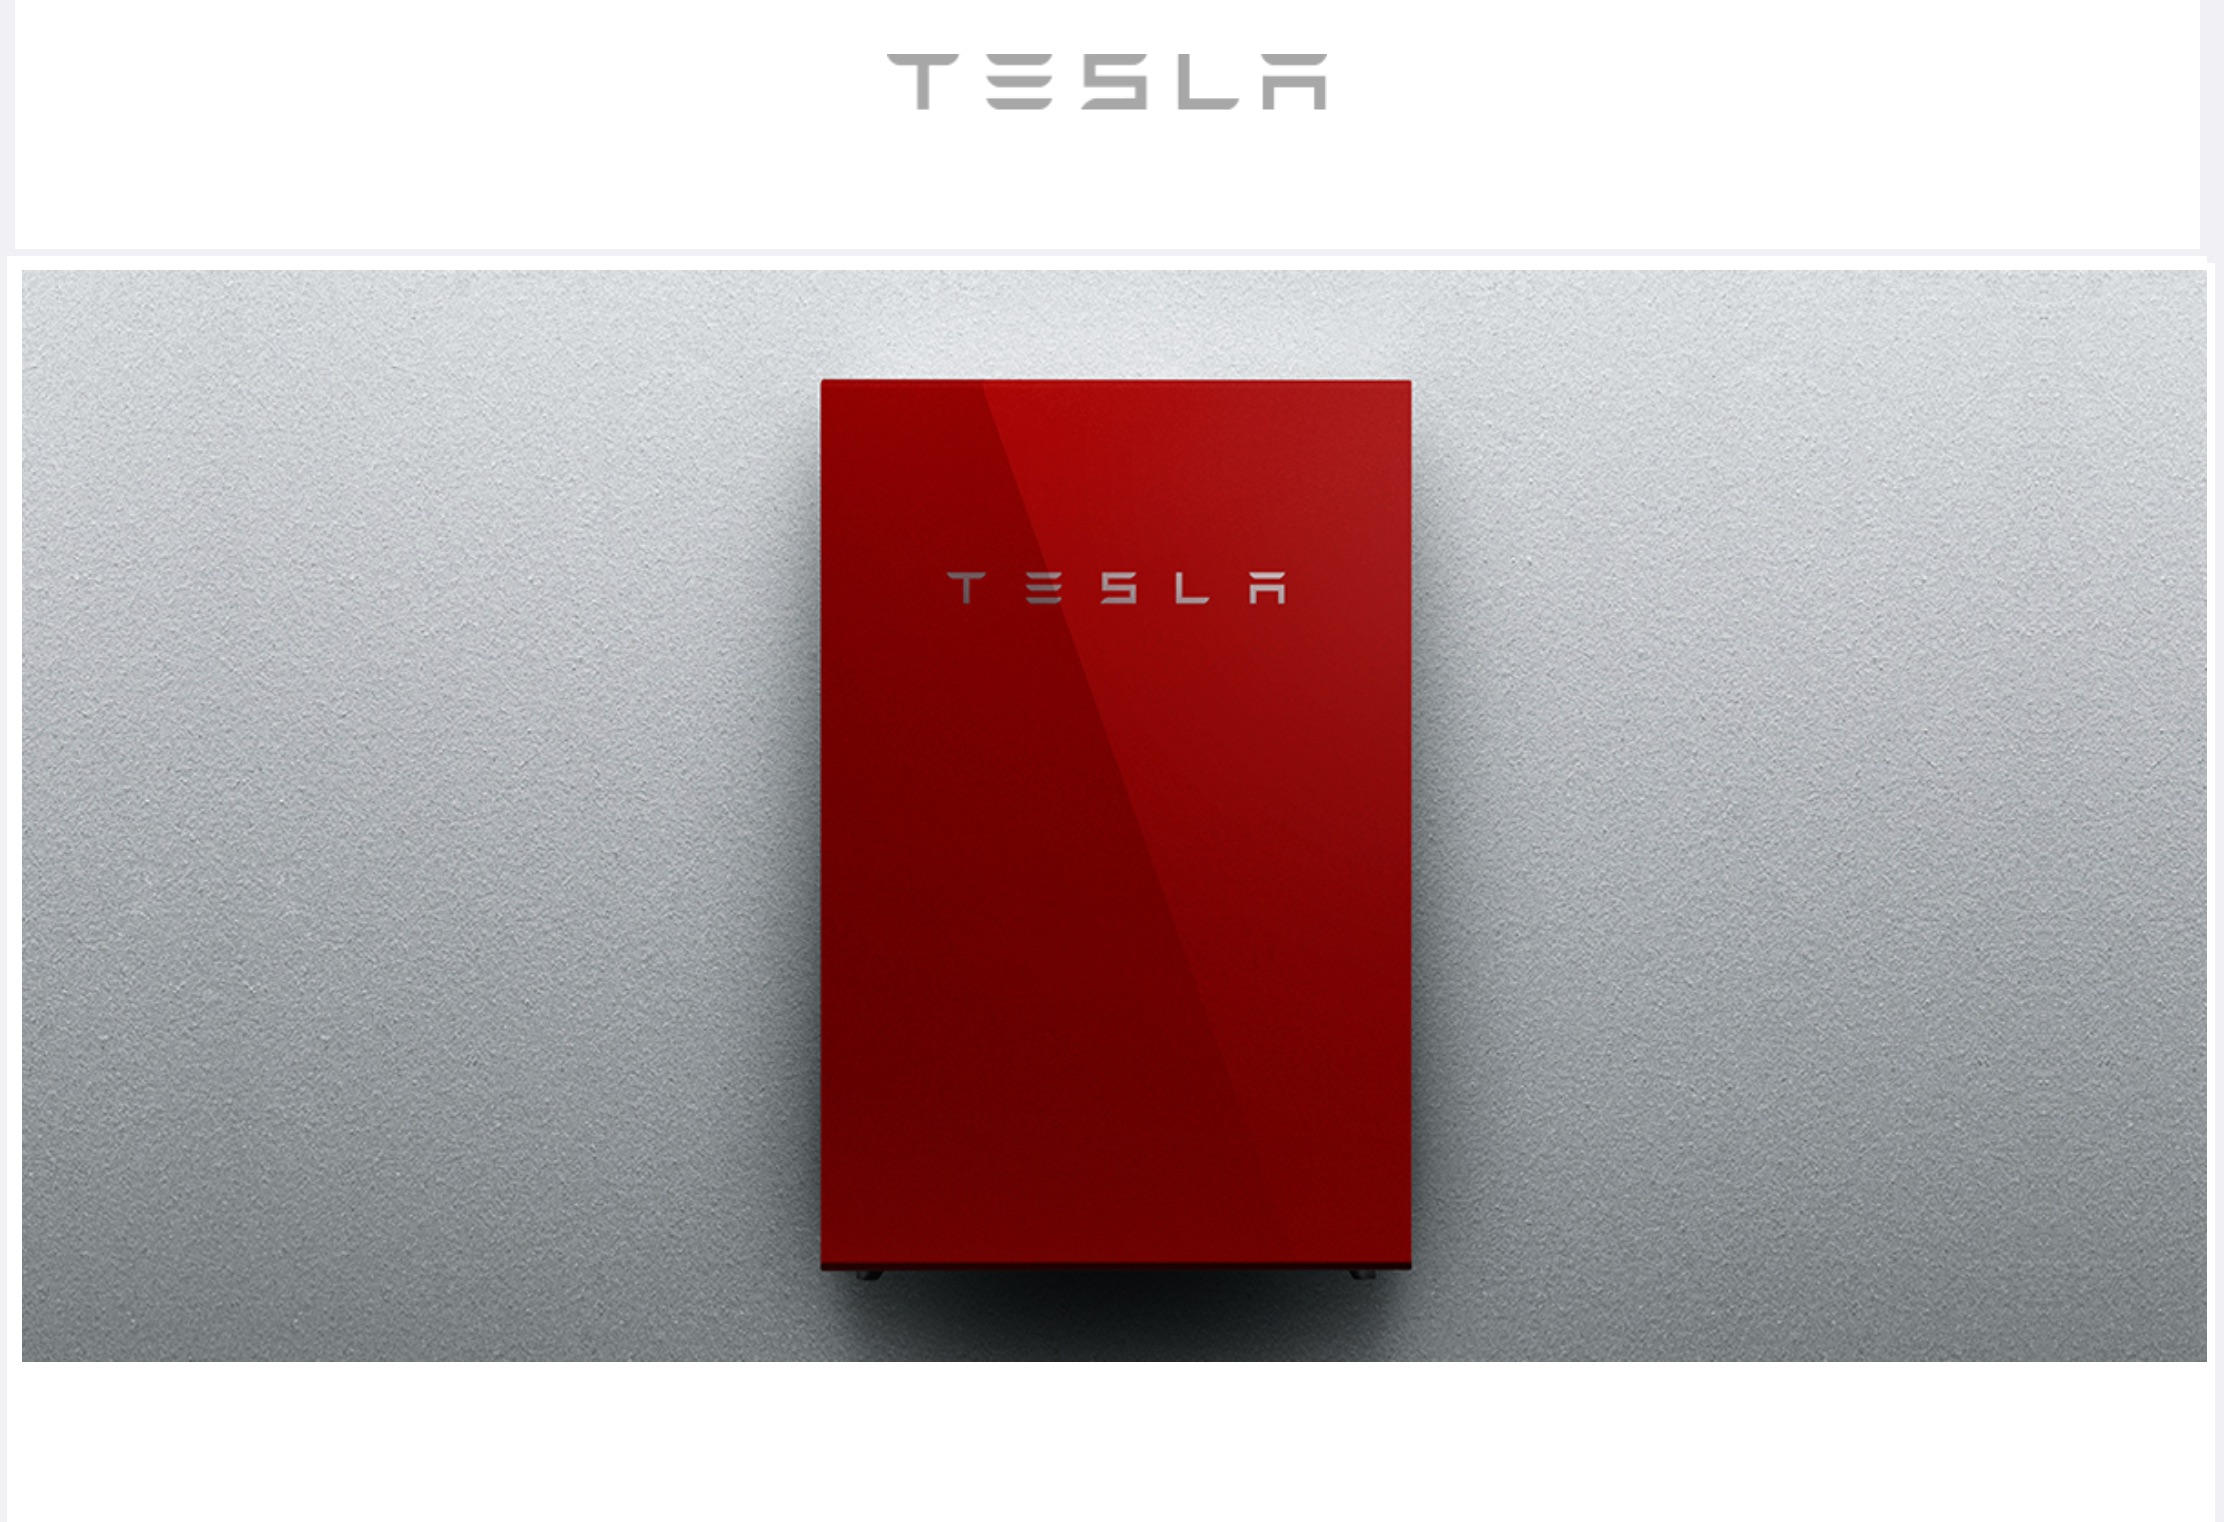 tesla-red-founders-series-powerwall-2